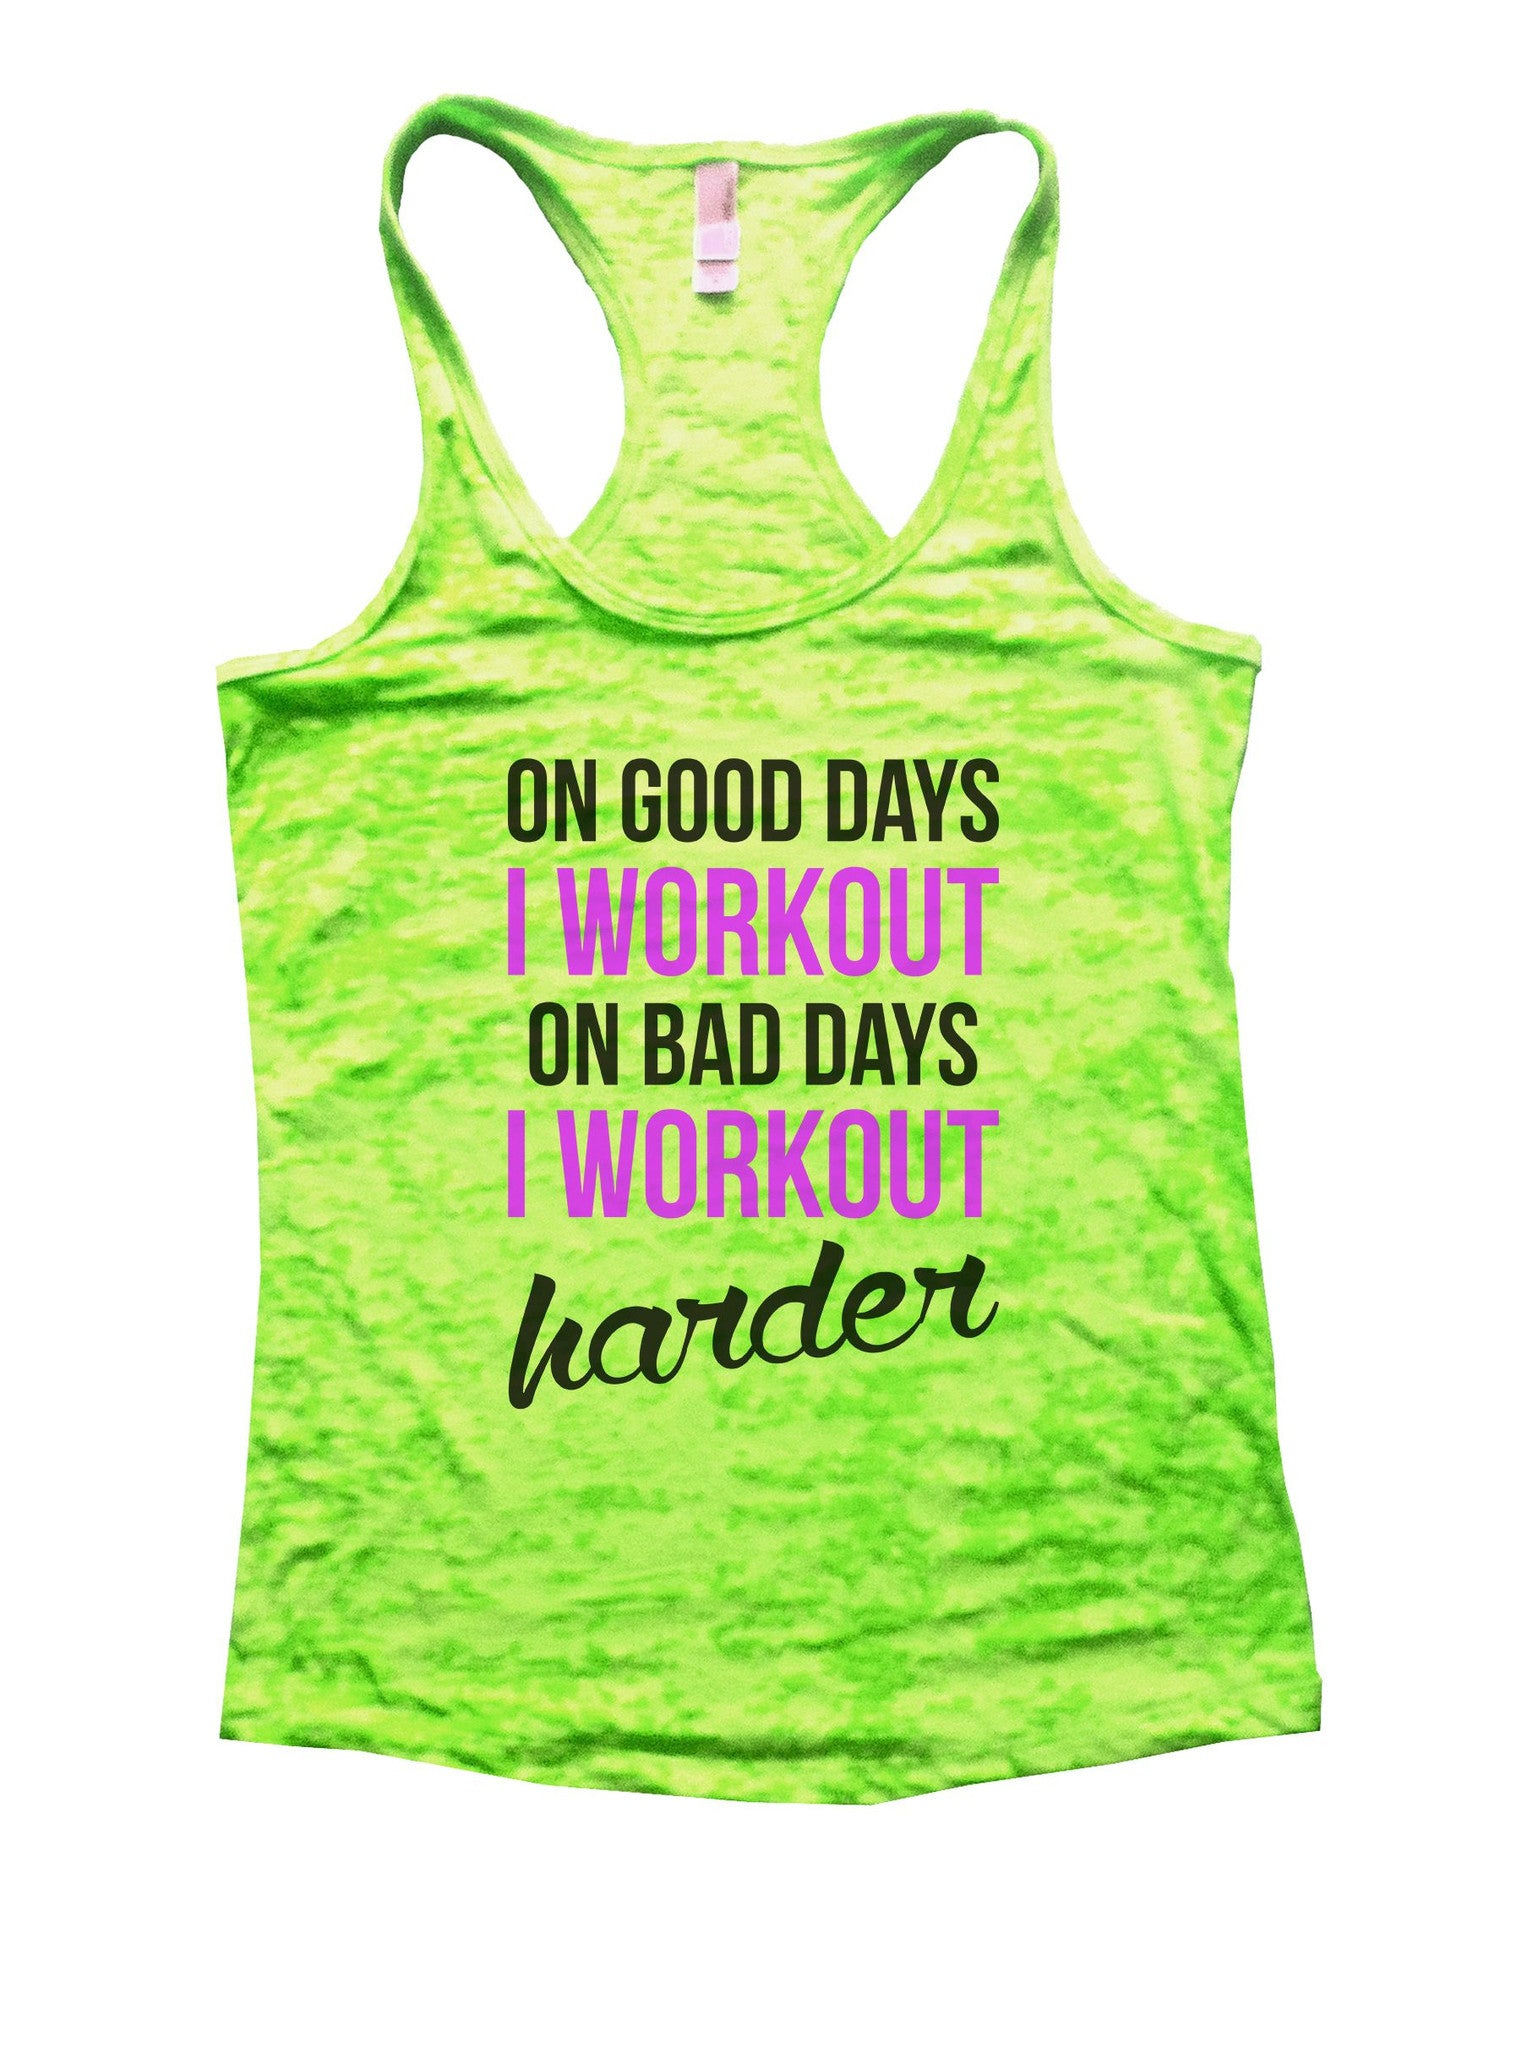 On Good Days I Workout On Bad Days I Workout Harder Burnout Tank Top By BurnoutTankTops.com - 850 - Funny Shirts Tank Tops Burnouts and Triblends  - 2